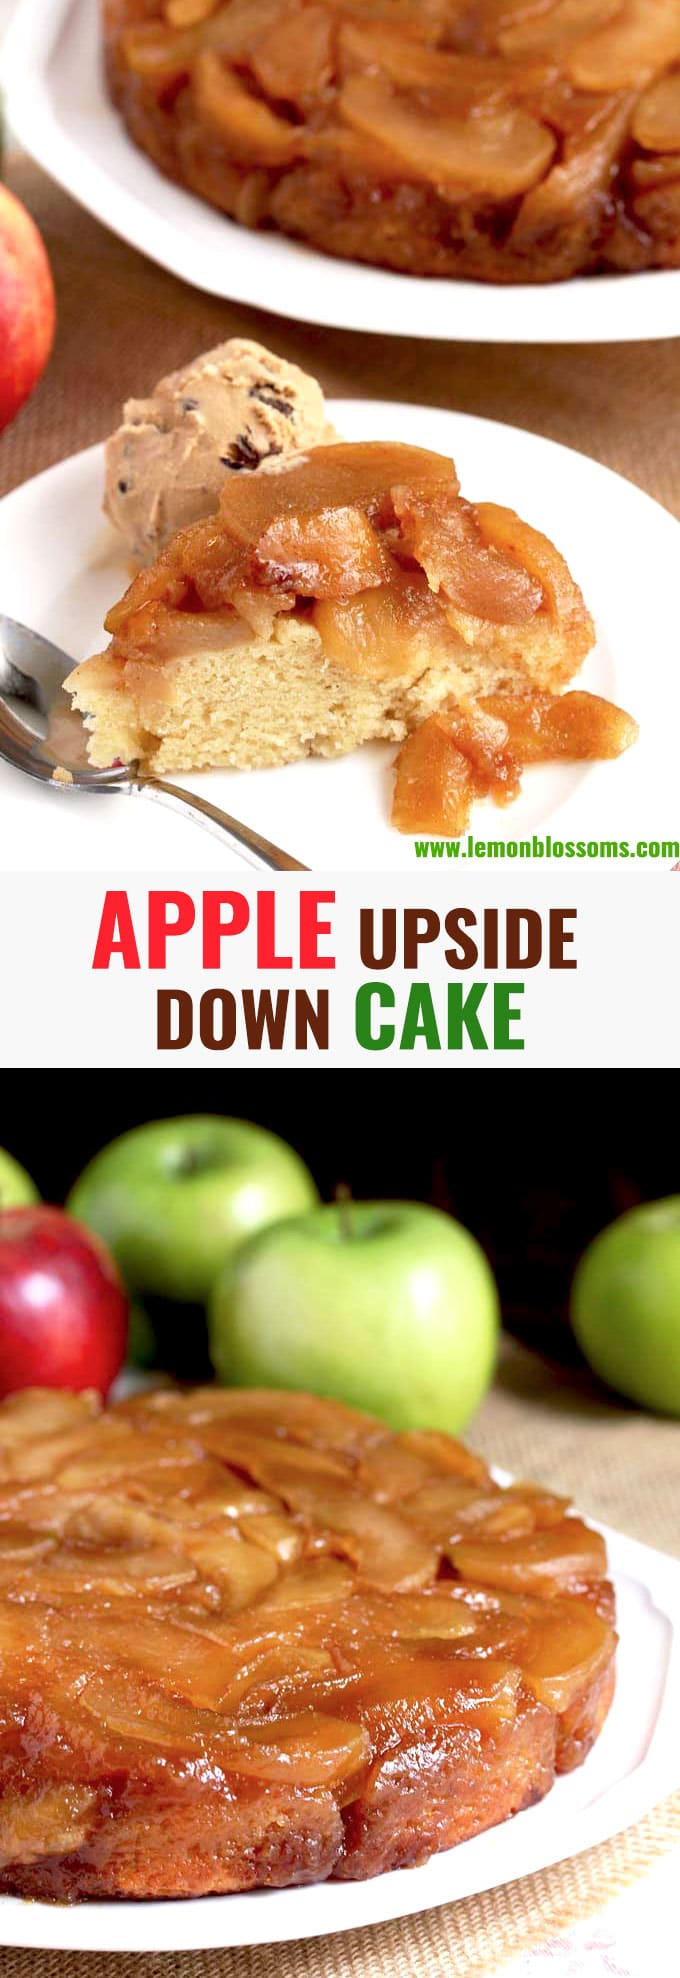 Apple Upside Down Cake features a caramelized cinnamon apple topping that is baked right into a light and fluffy vanilla sour cream cake. This Apple Upside Down Cake is a delicious fall dessert that everyone will love. #AppleWeek #dessert #cake #caramel #easy #recipe #cinnamon #best